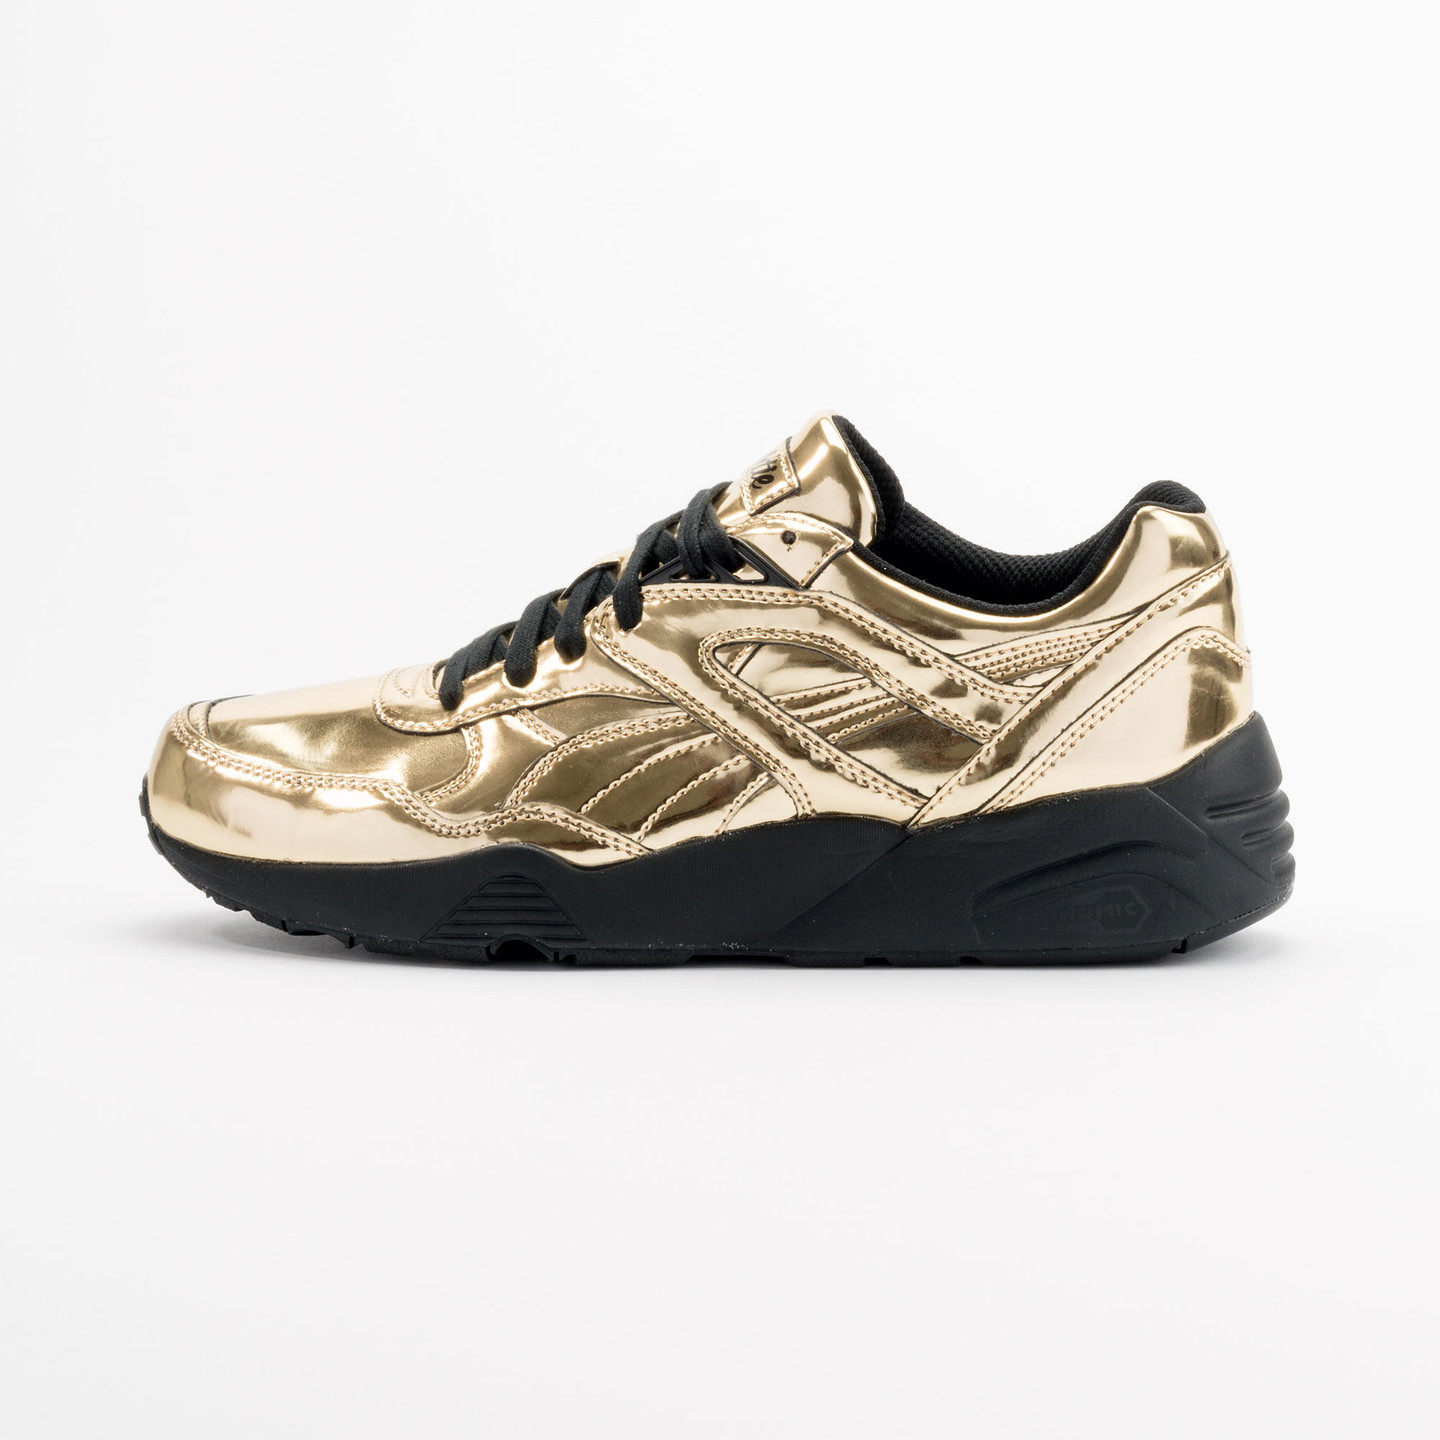 Puma R698 x Vashtie Gold Metallic Gold / Black 358838 01-45